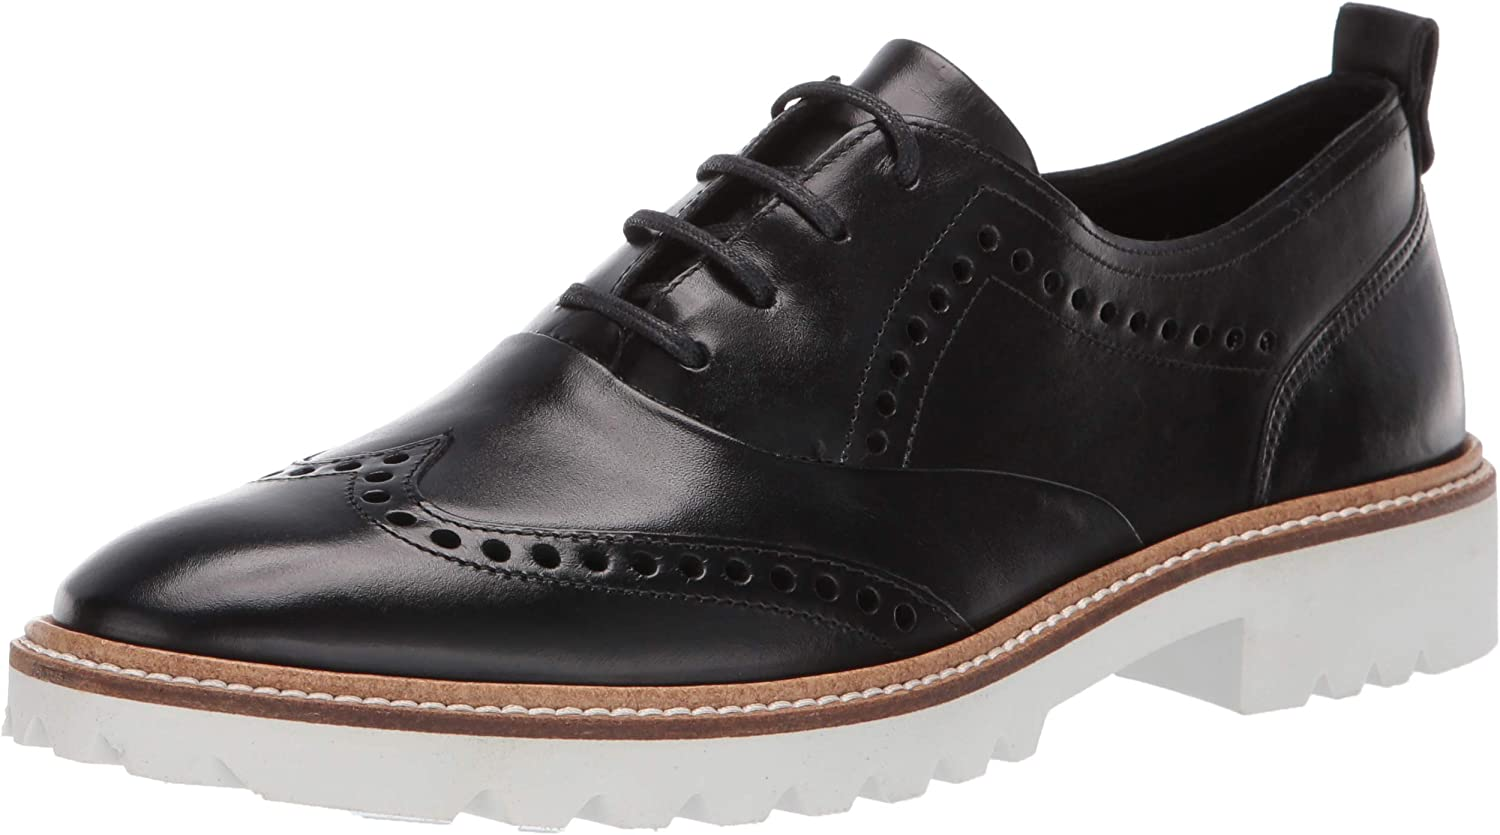 ECCO Womens Incise Tailored Wing Tip Oxford Flat